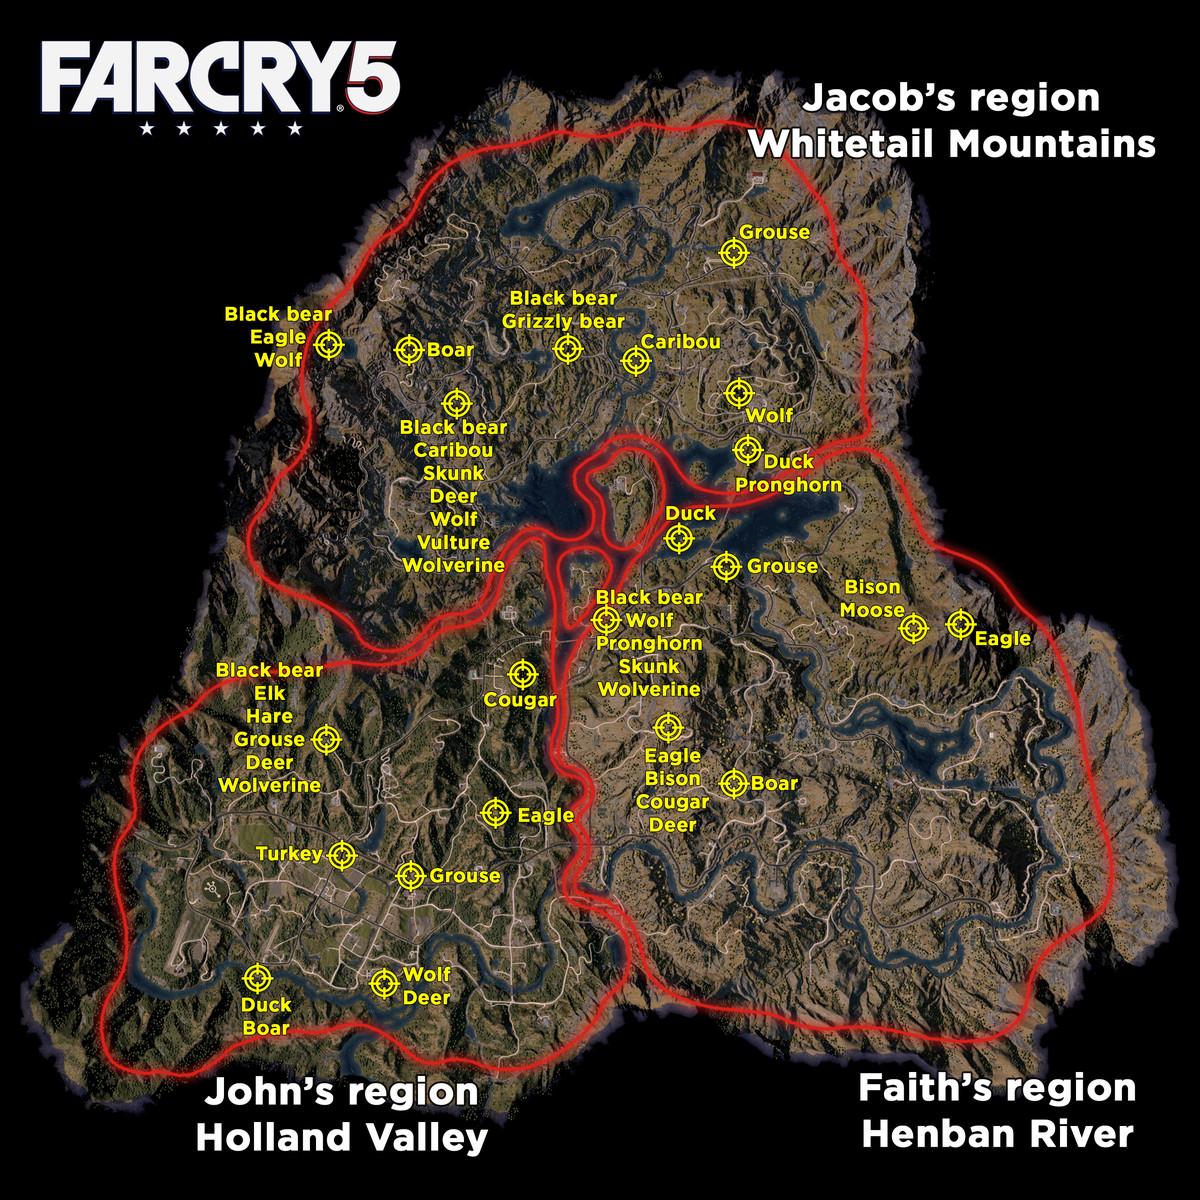 Far cry 5 best hunting locations polygon far cry 5 hunting map and animal locations gumiabroncs Choice Image